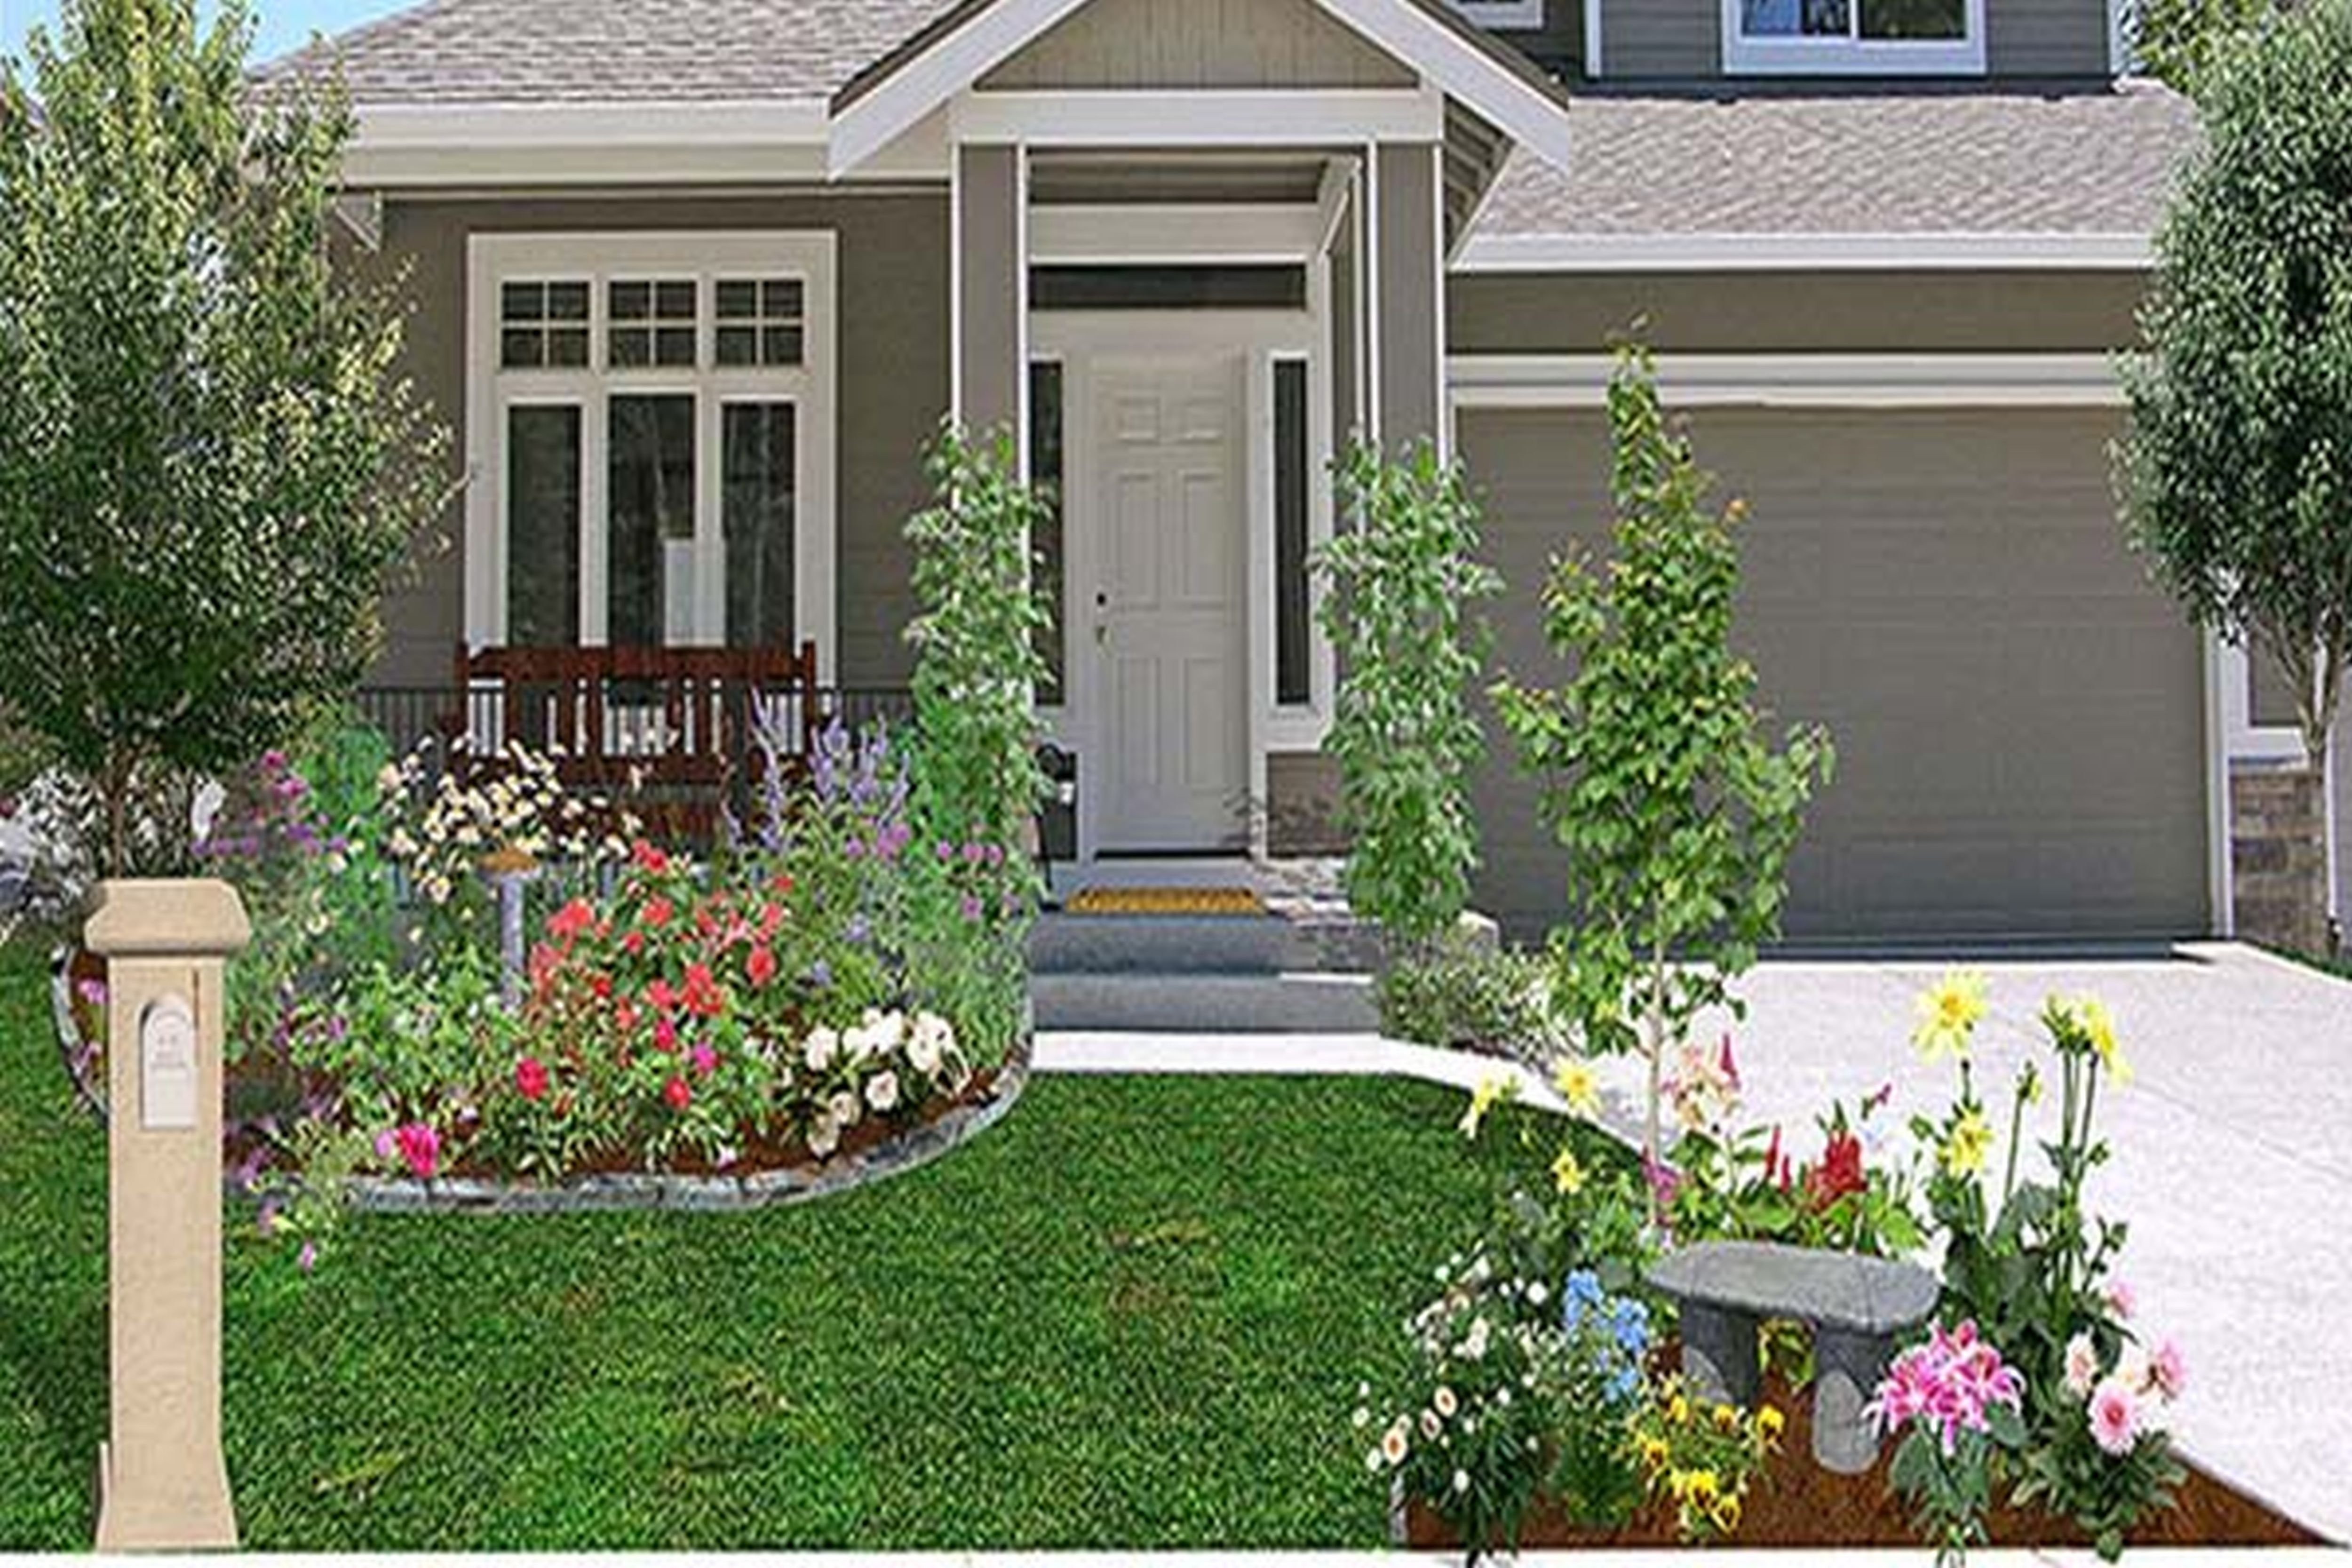 10 Unique Cheap Front Yard Landscaping Ideas cheap landscaping ideas for front yard amys office greenvirals style 2 2021